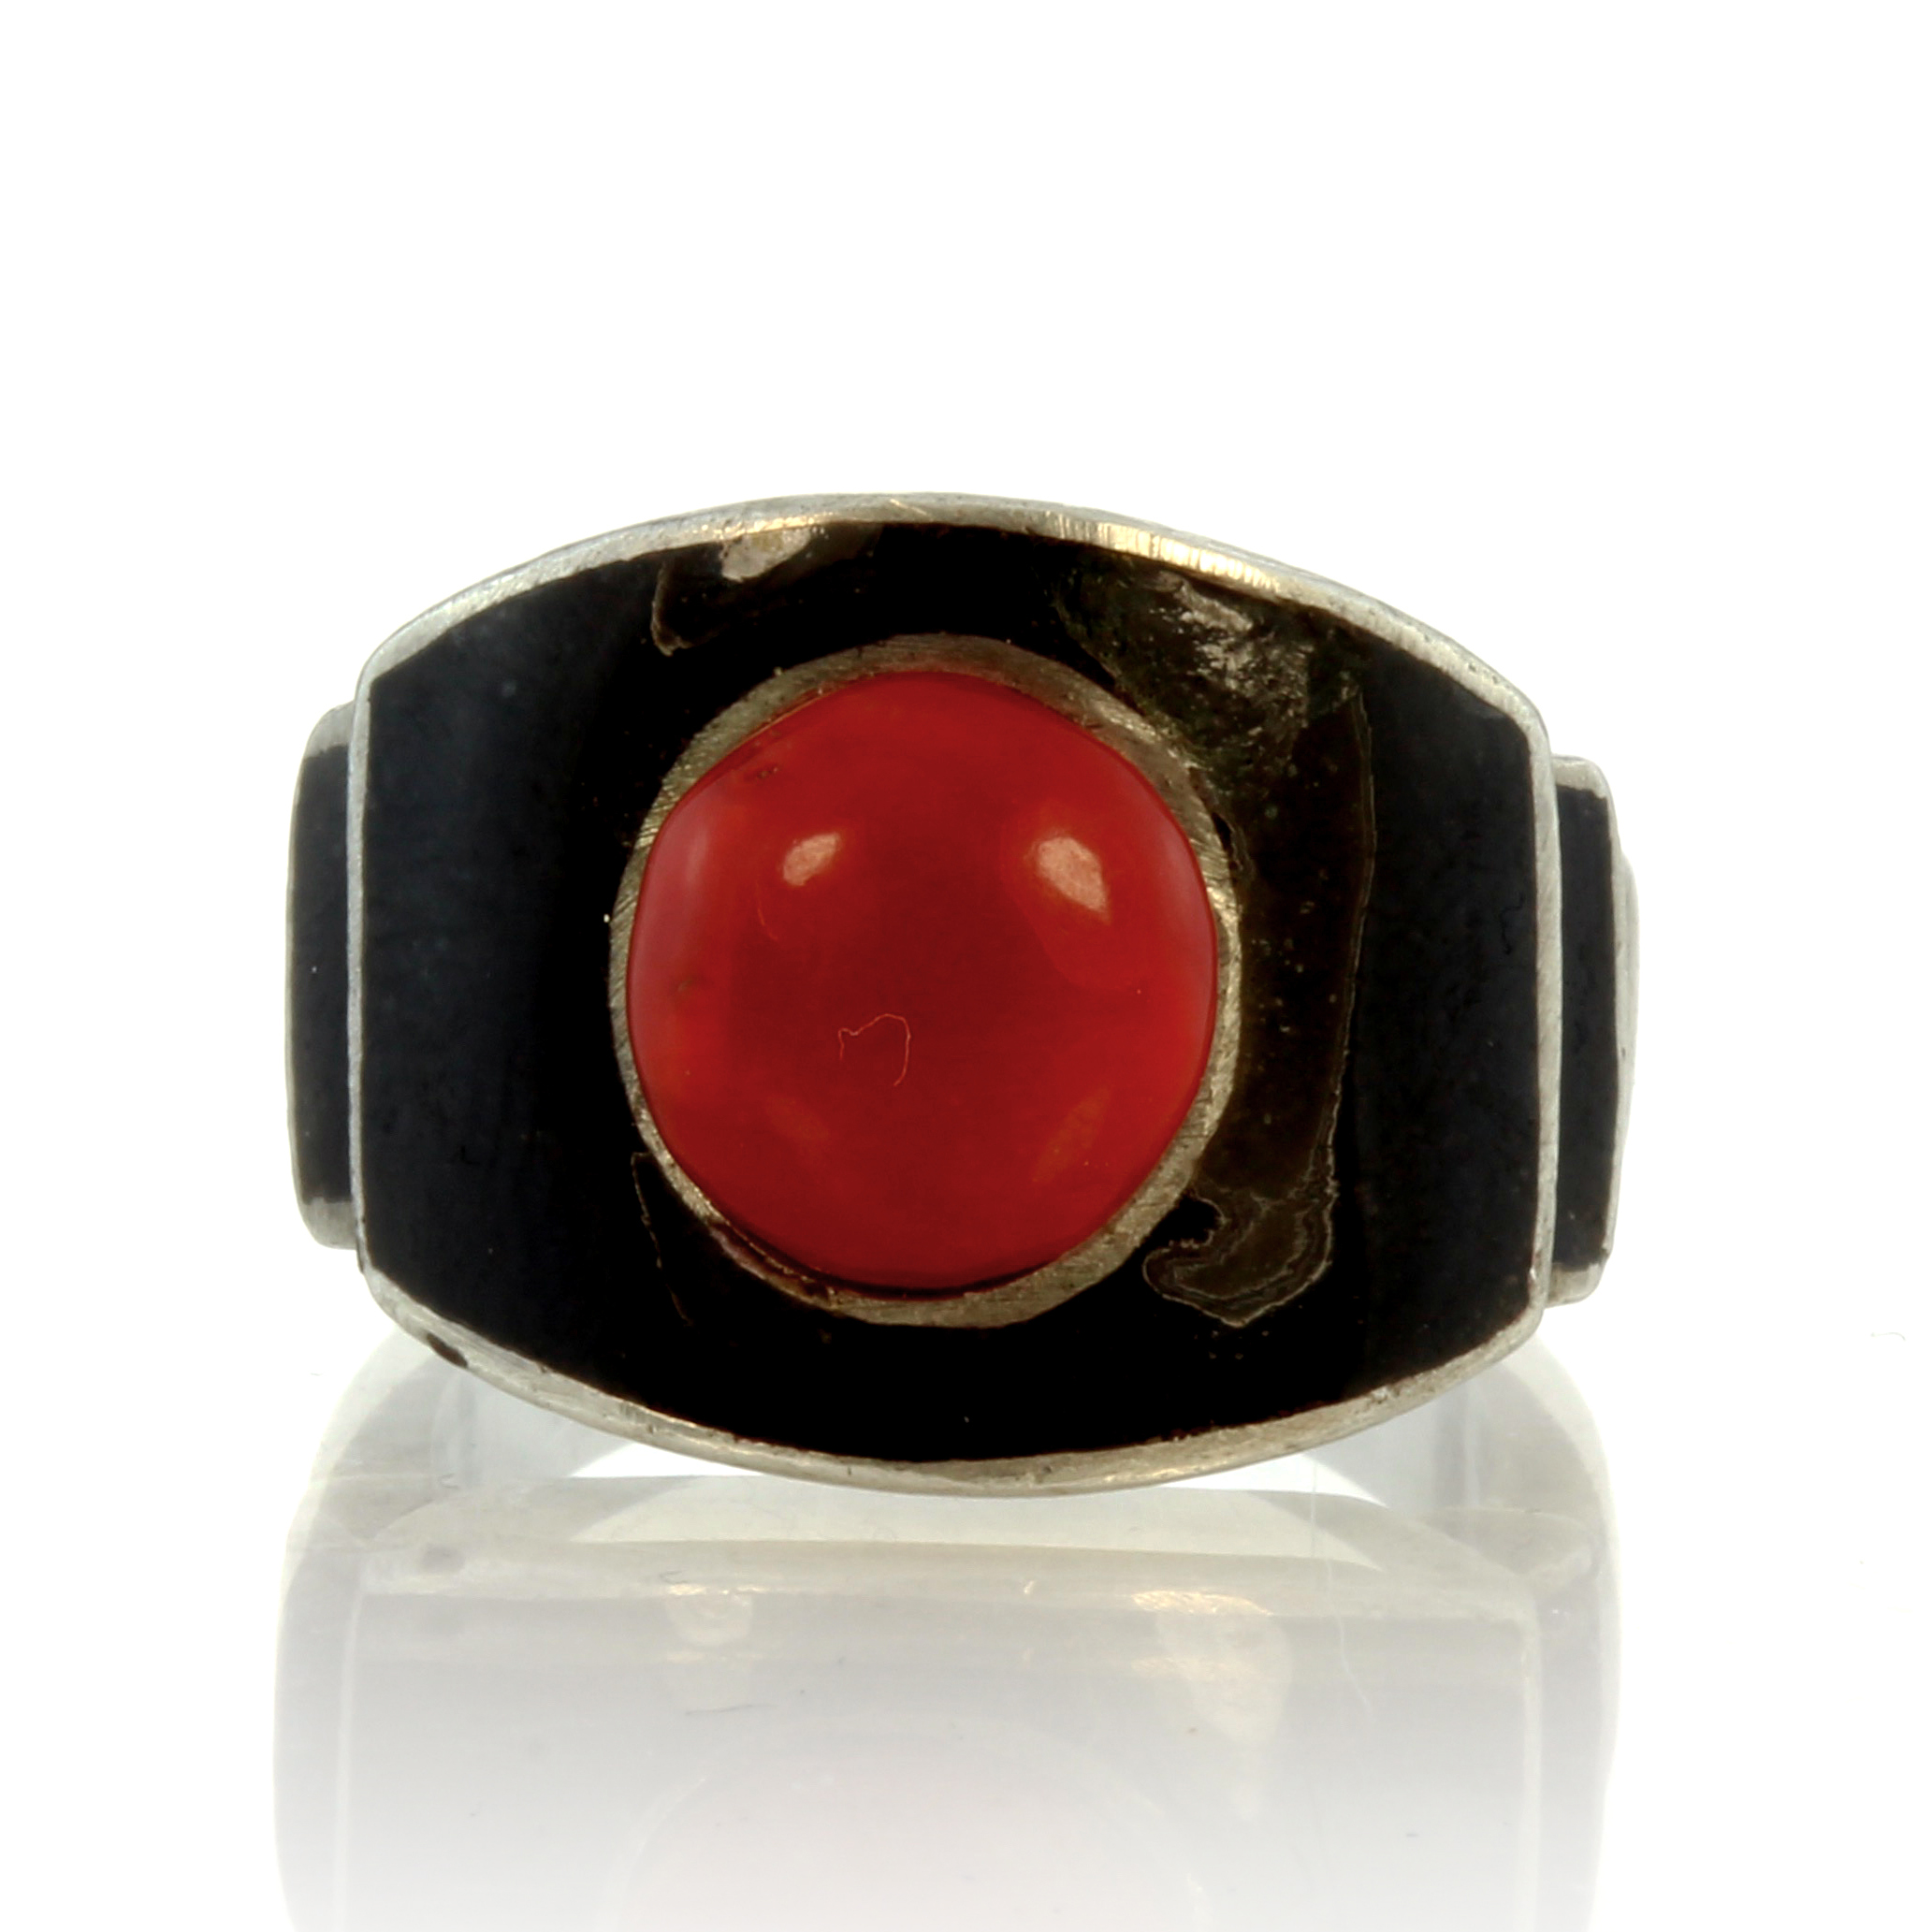 Los 20 - A vintage French coral and enamel dress ring in silver set with a central coral cabochon against a